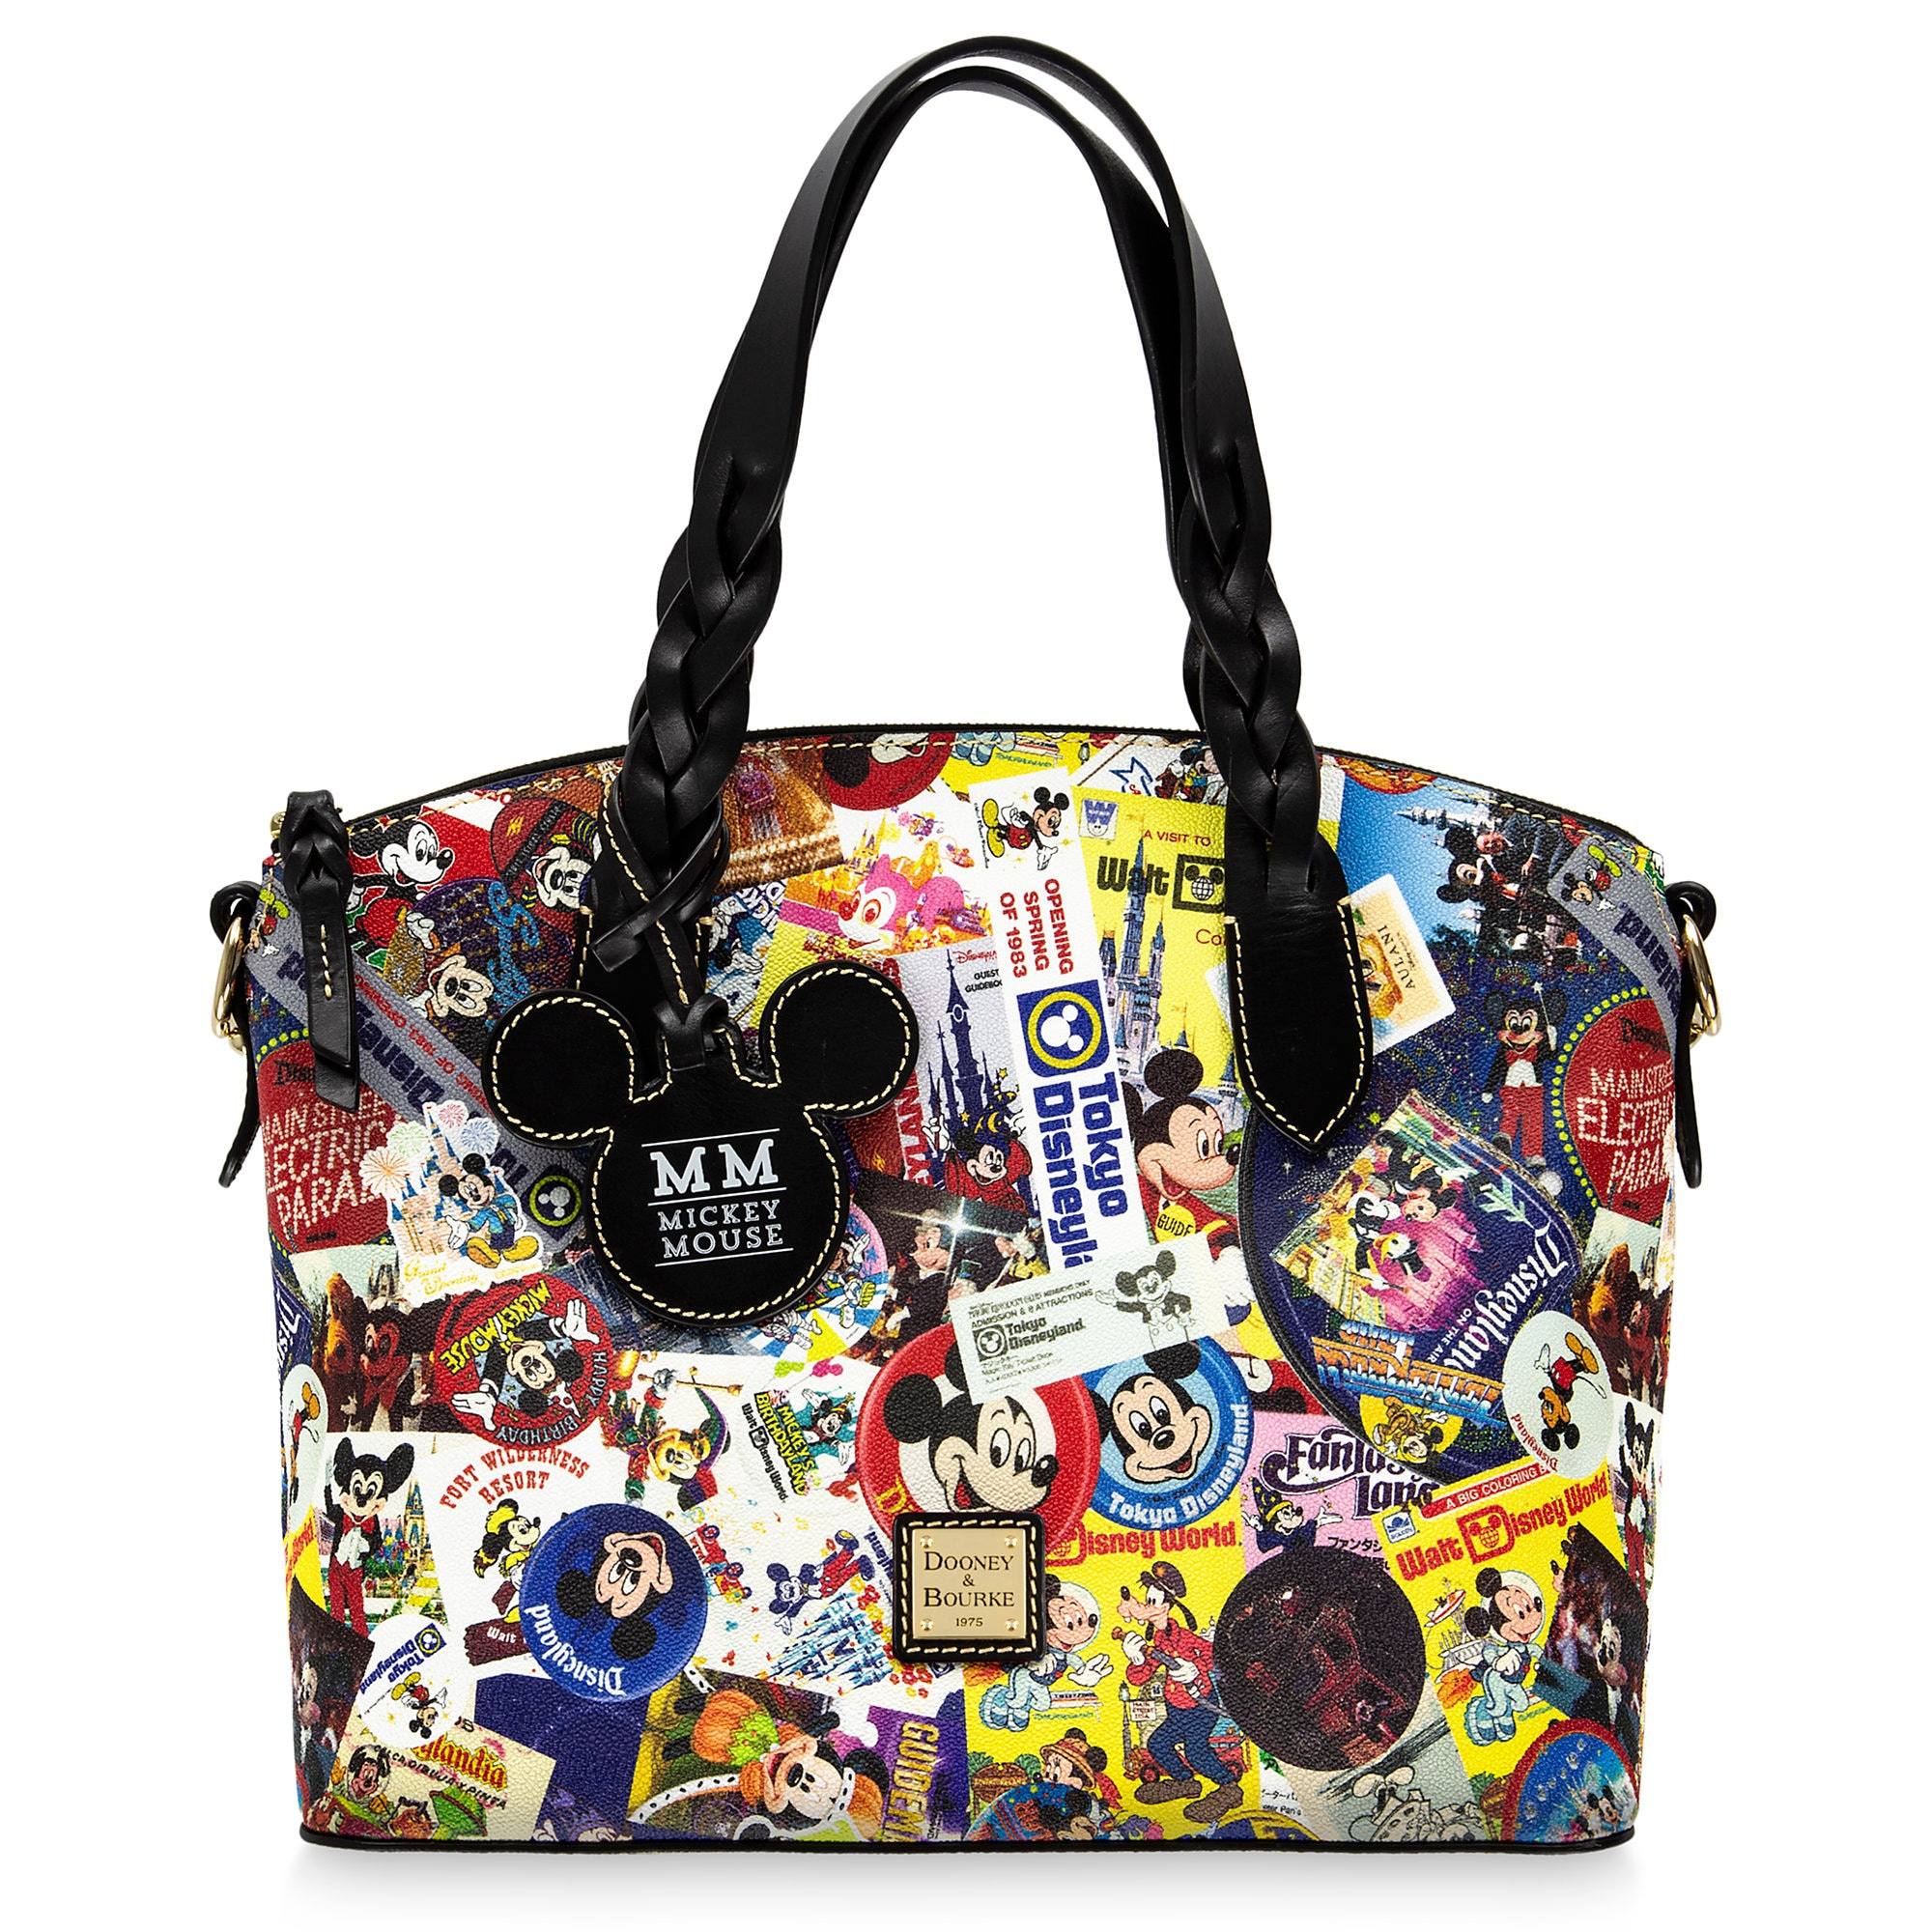 Mickey Mouse Satchel by Dooney & Bourke Official shopDisney